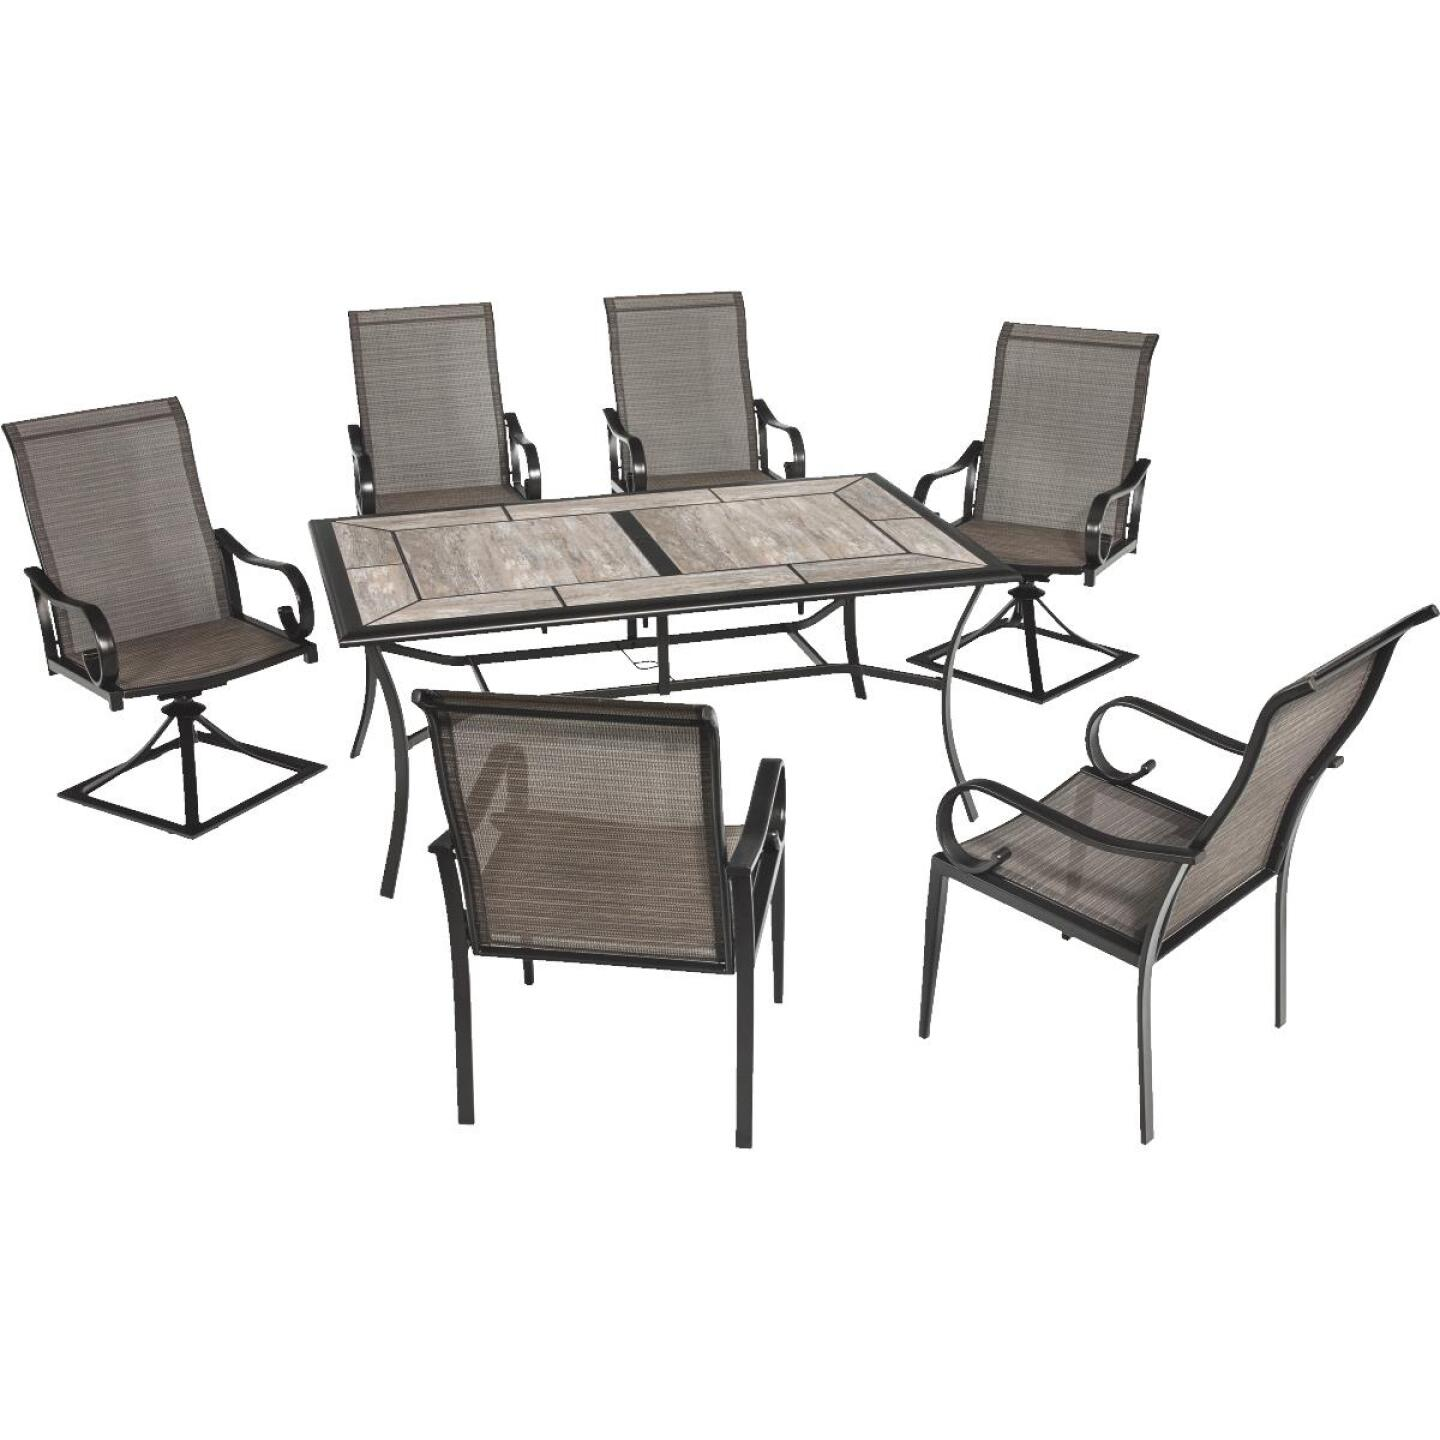 Outdoor Expressions Berkshire 7-Piece Dining Set Image 137